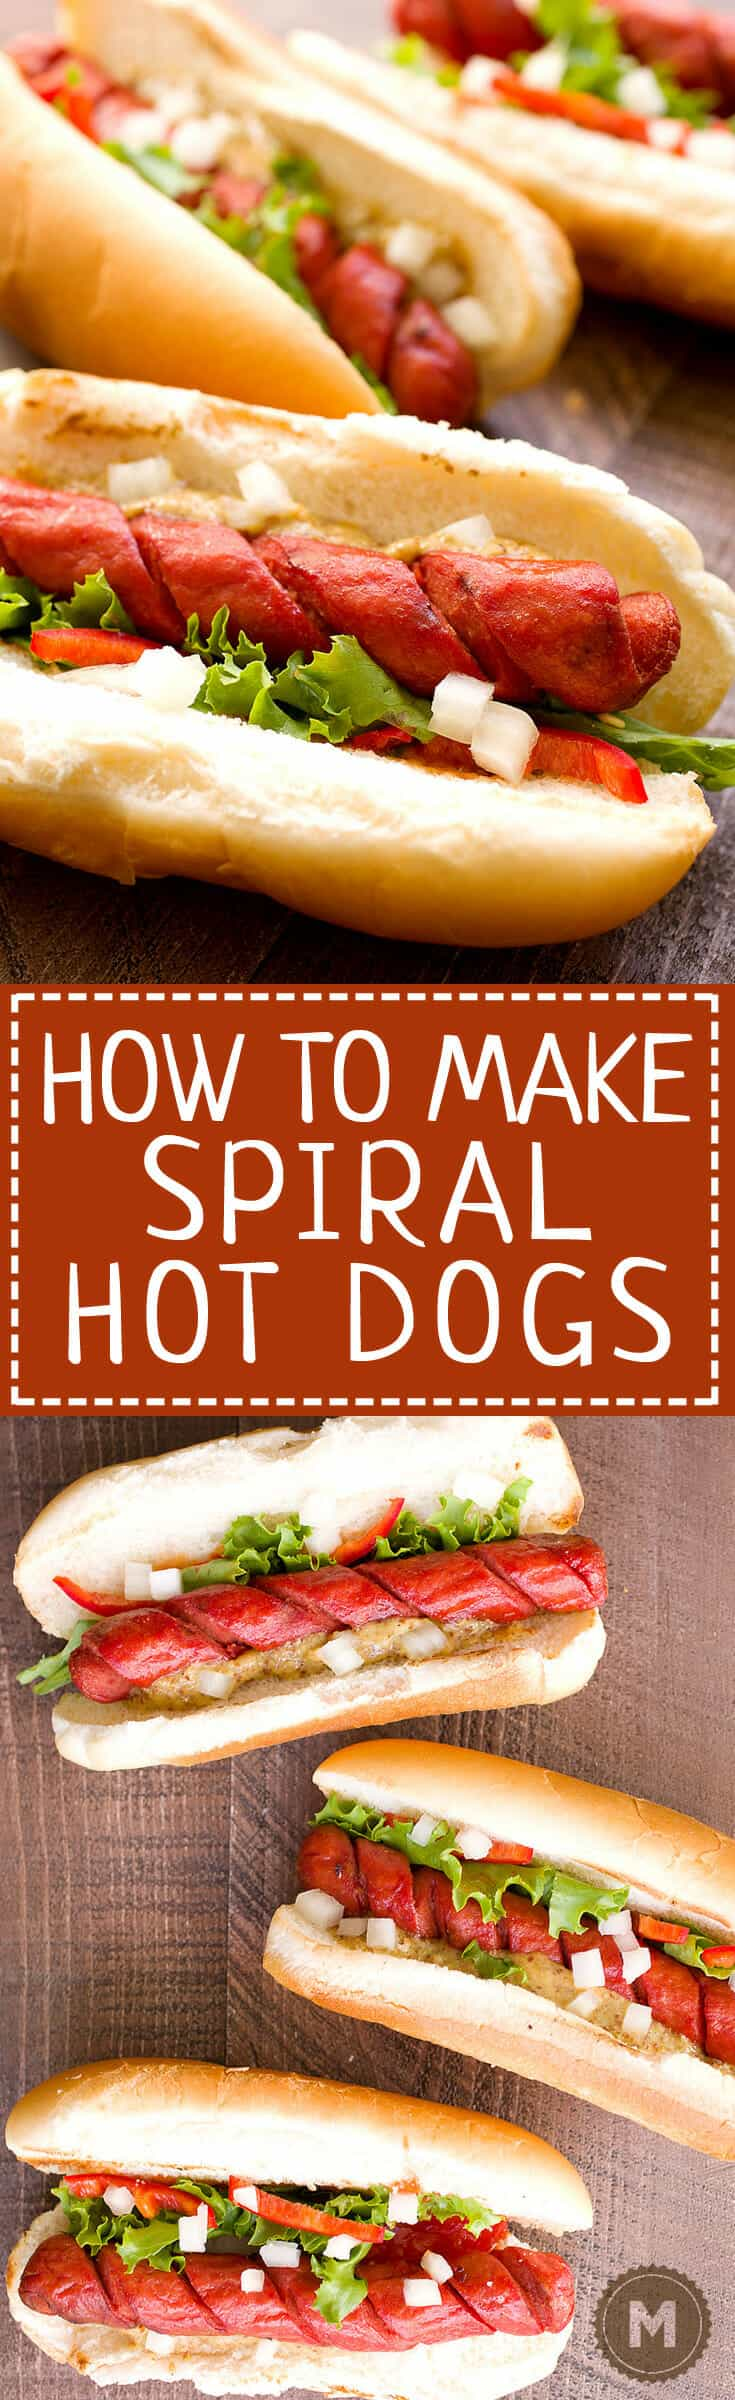 How to Make Spiral Hot Dogs: You are one quick tip away from completely changing your grilling game this year. This fast prep takes your average hot dog to a whole new level. They get crispy and perfect for lazy day grilling. Learn how to do it right! | macheesmo.com